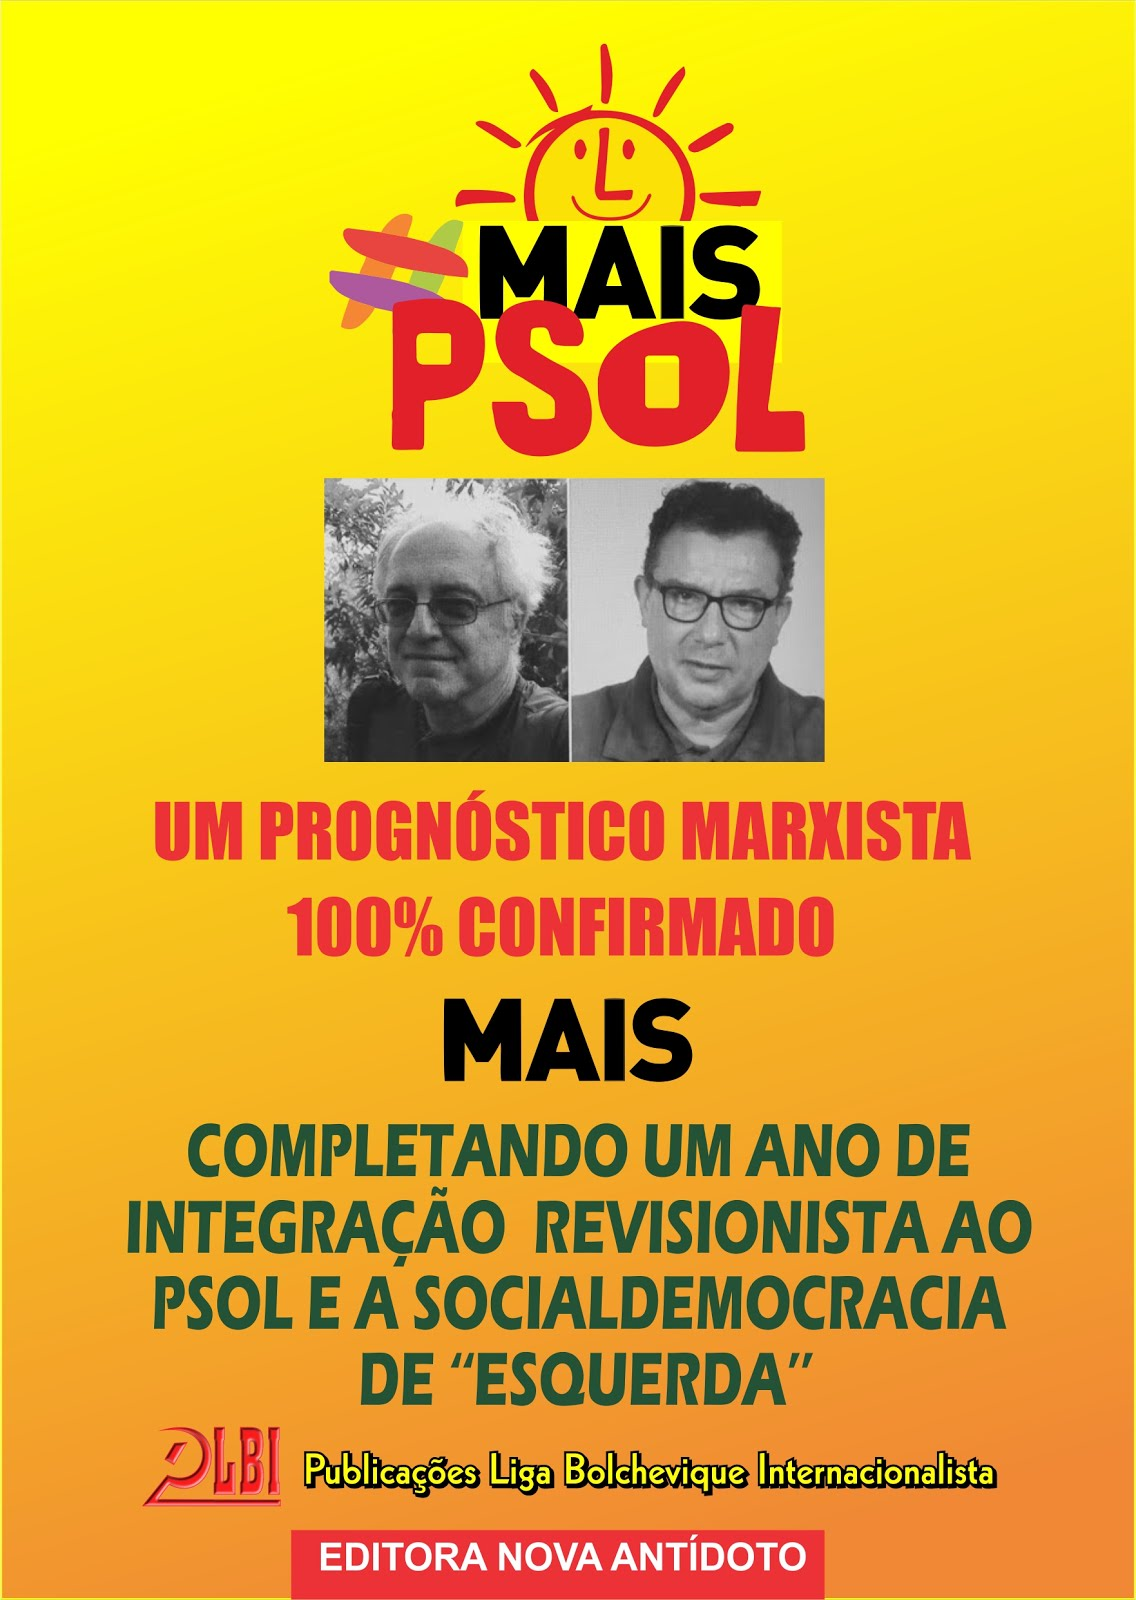 PUBLICAÇÕES LBI